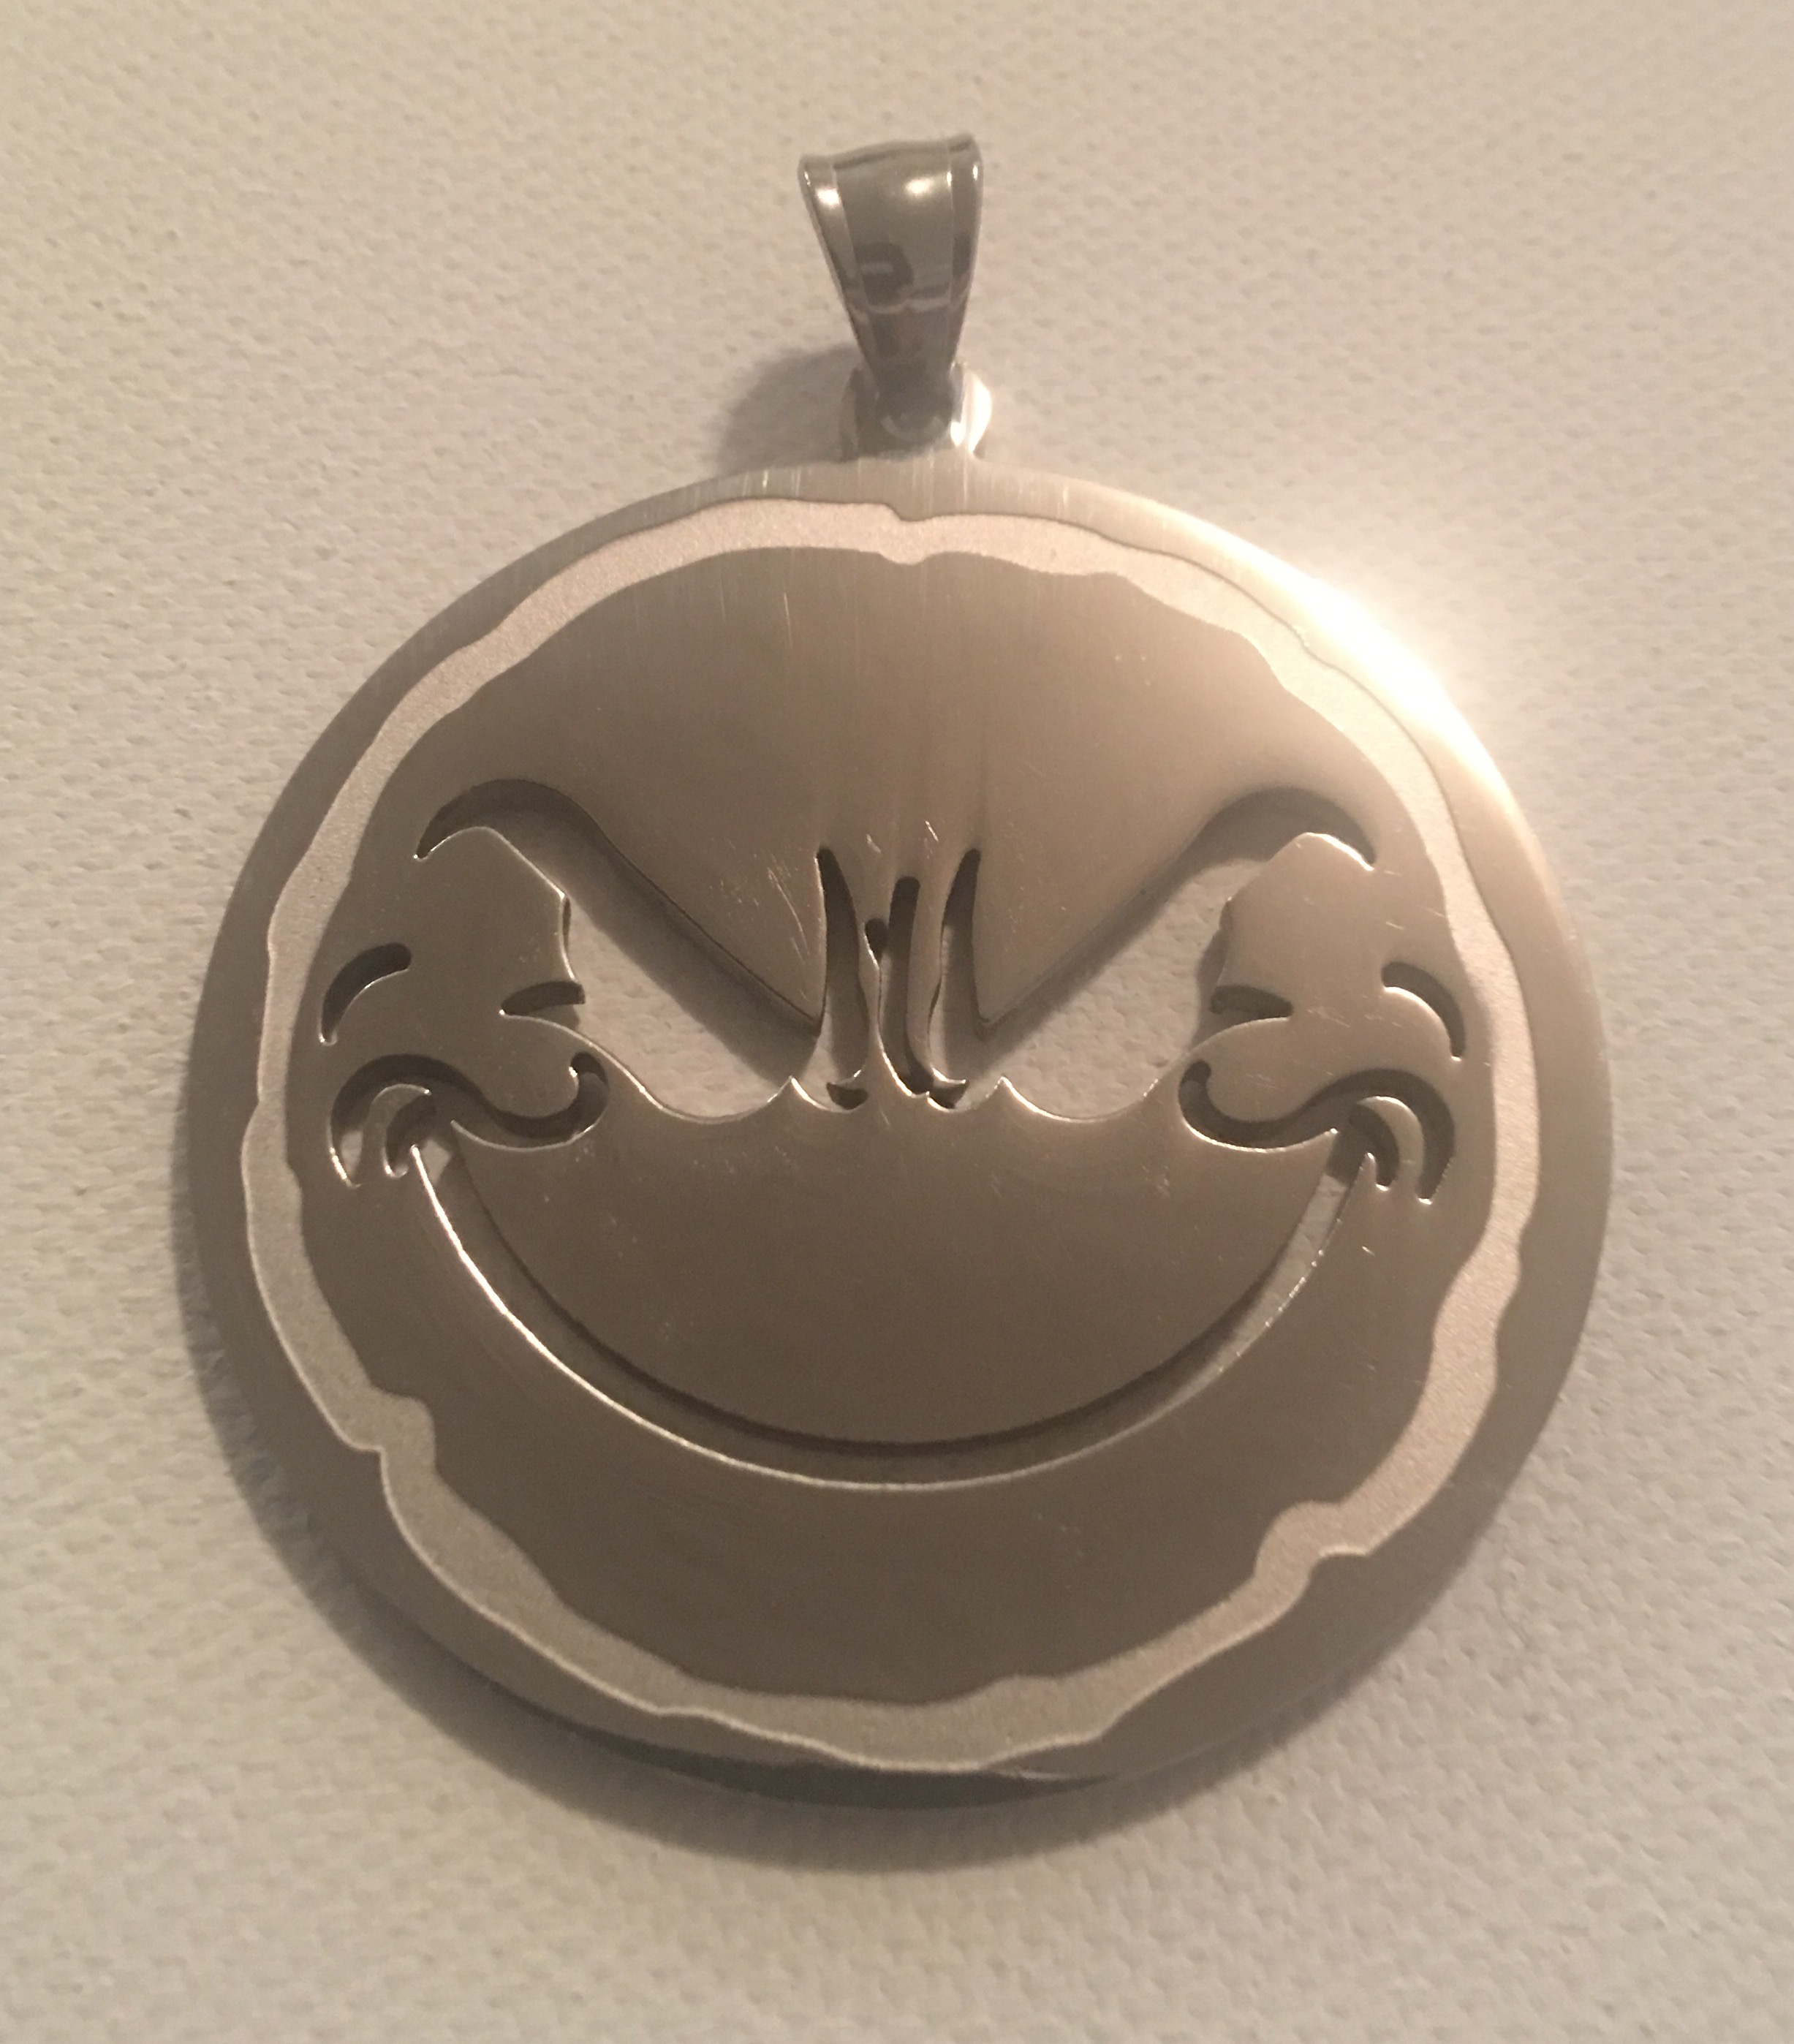 Weirdo 2″ Stainless Steel Charm